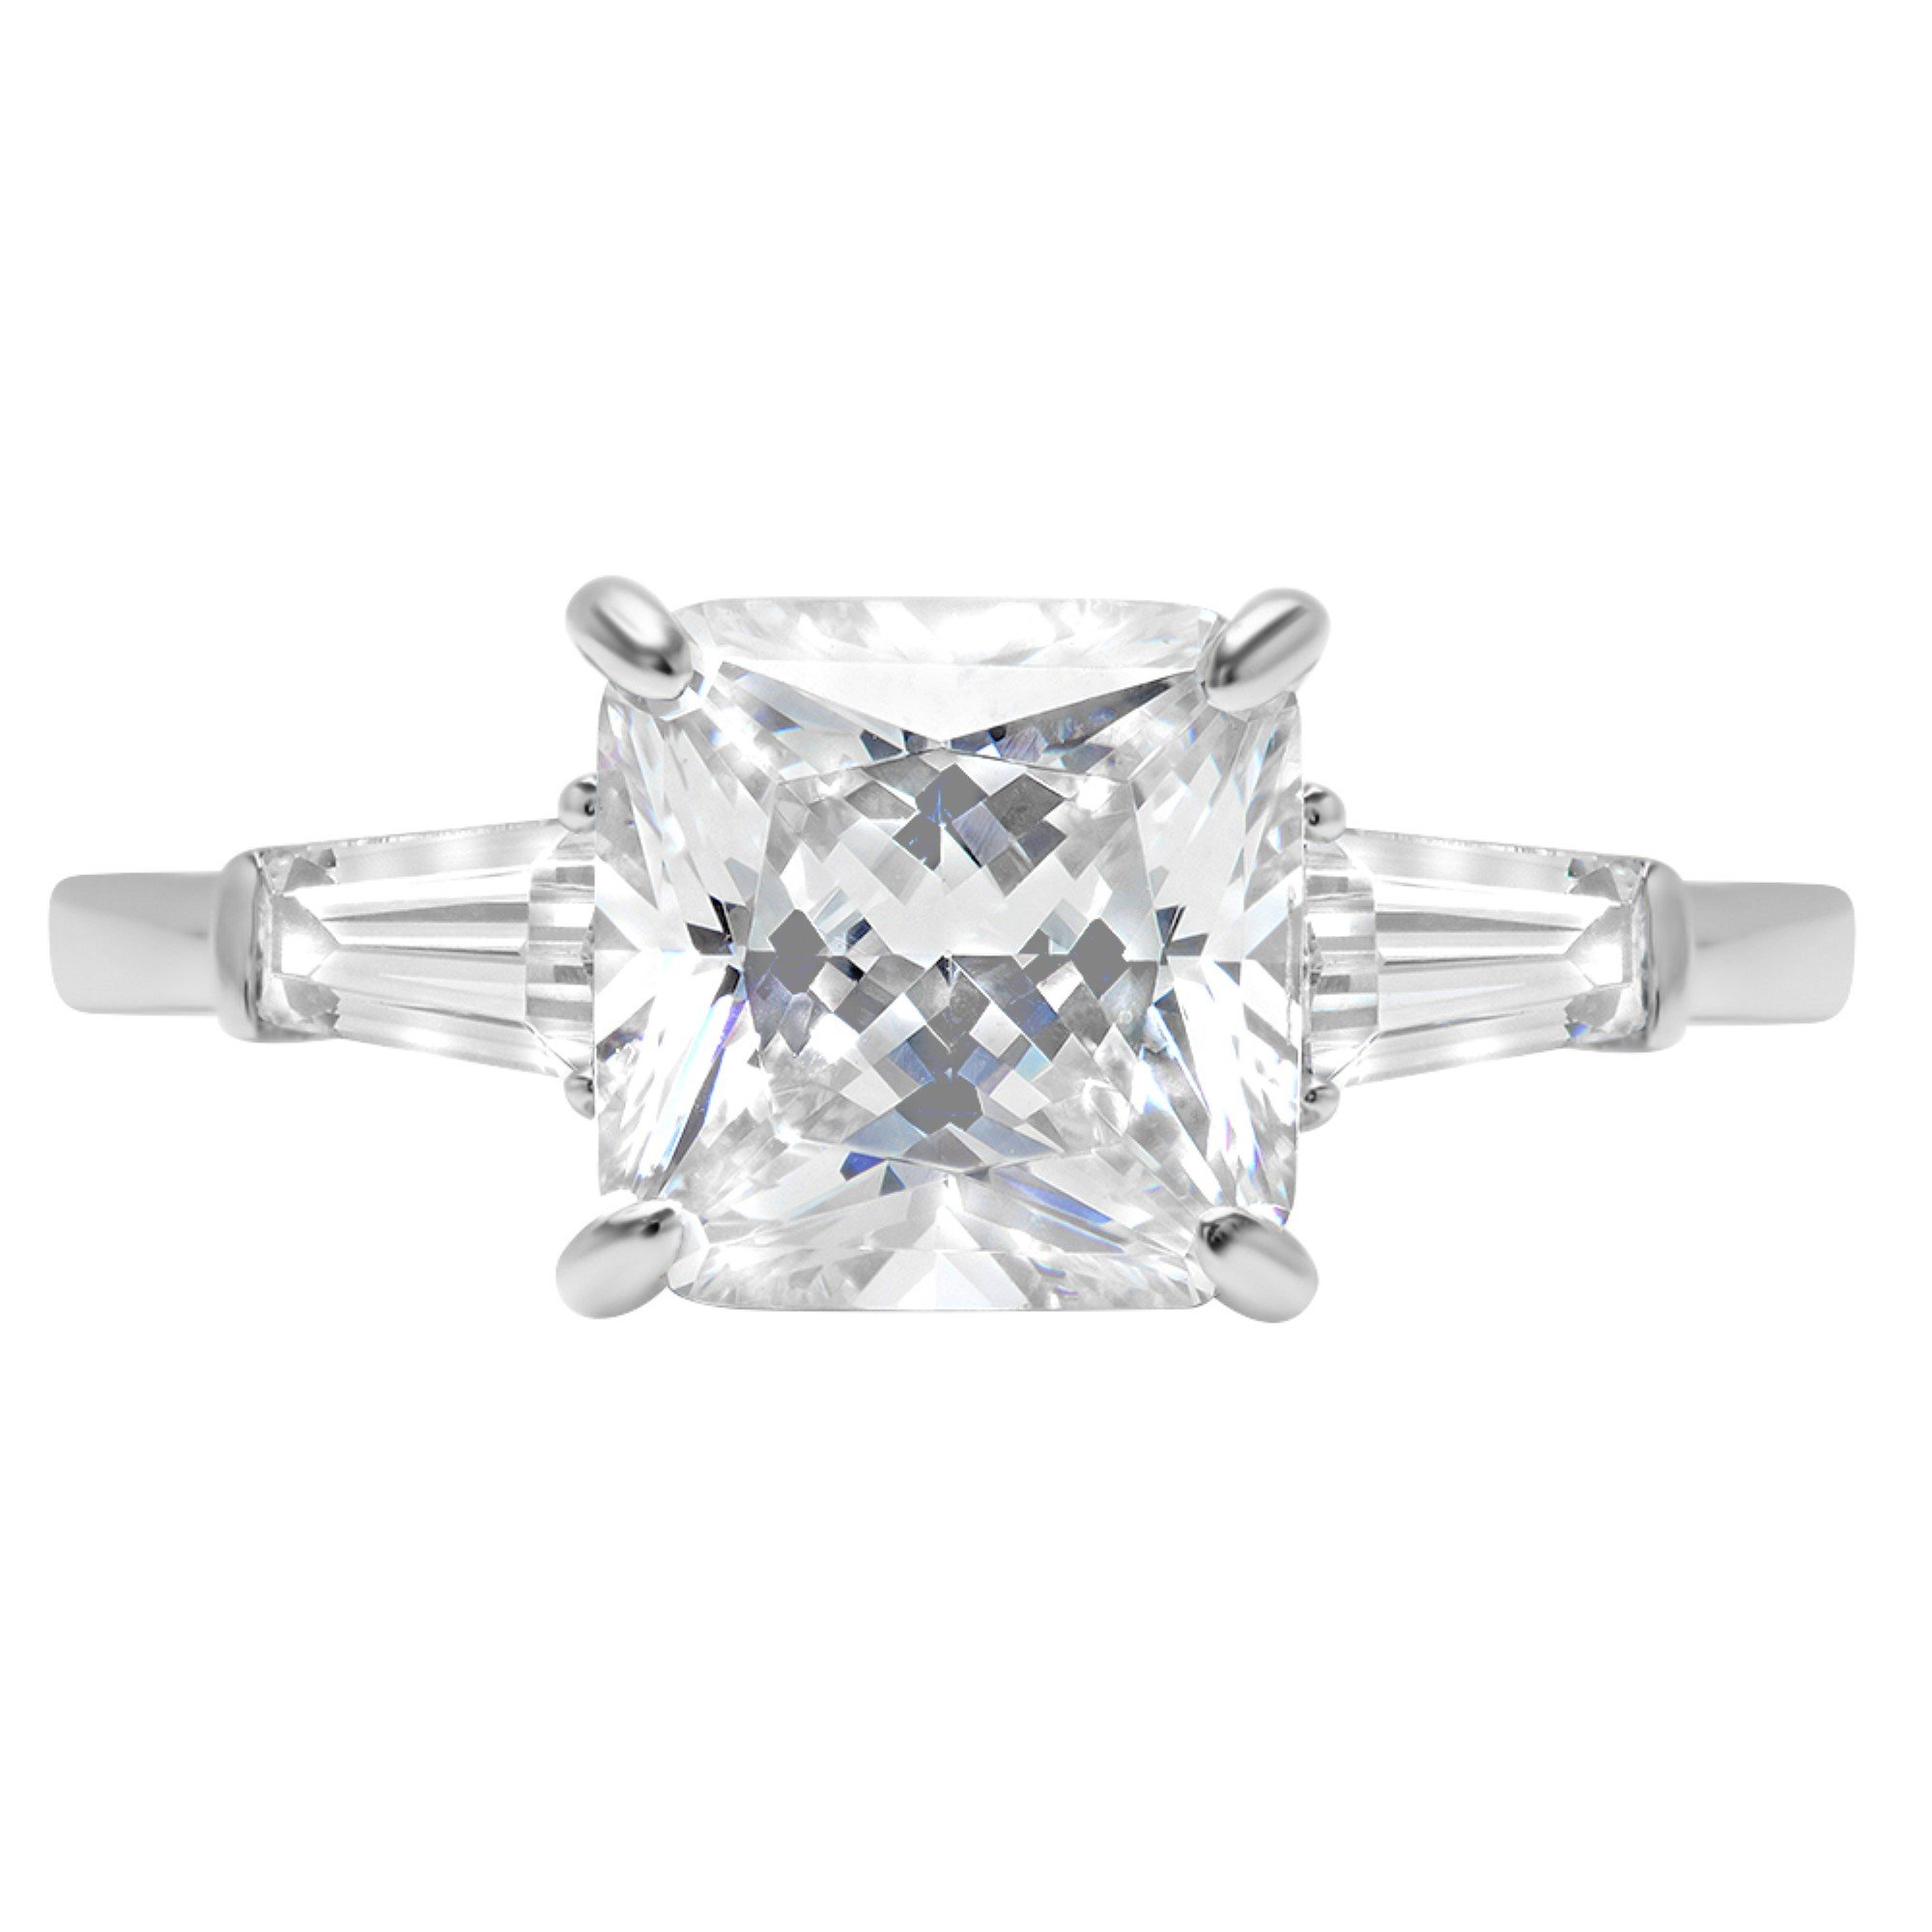 3.5ct Asscher Baguette 3-Stone Classic Solitaire Designer Wedding Bridal Statement Anniversary Statement Engagement Promise Ring 14k White Gold, 5.5